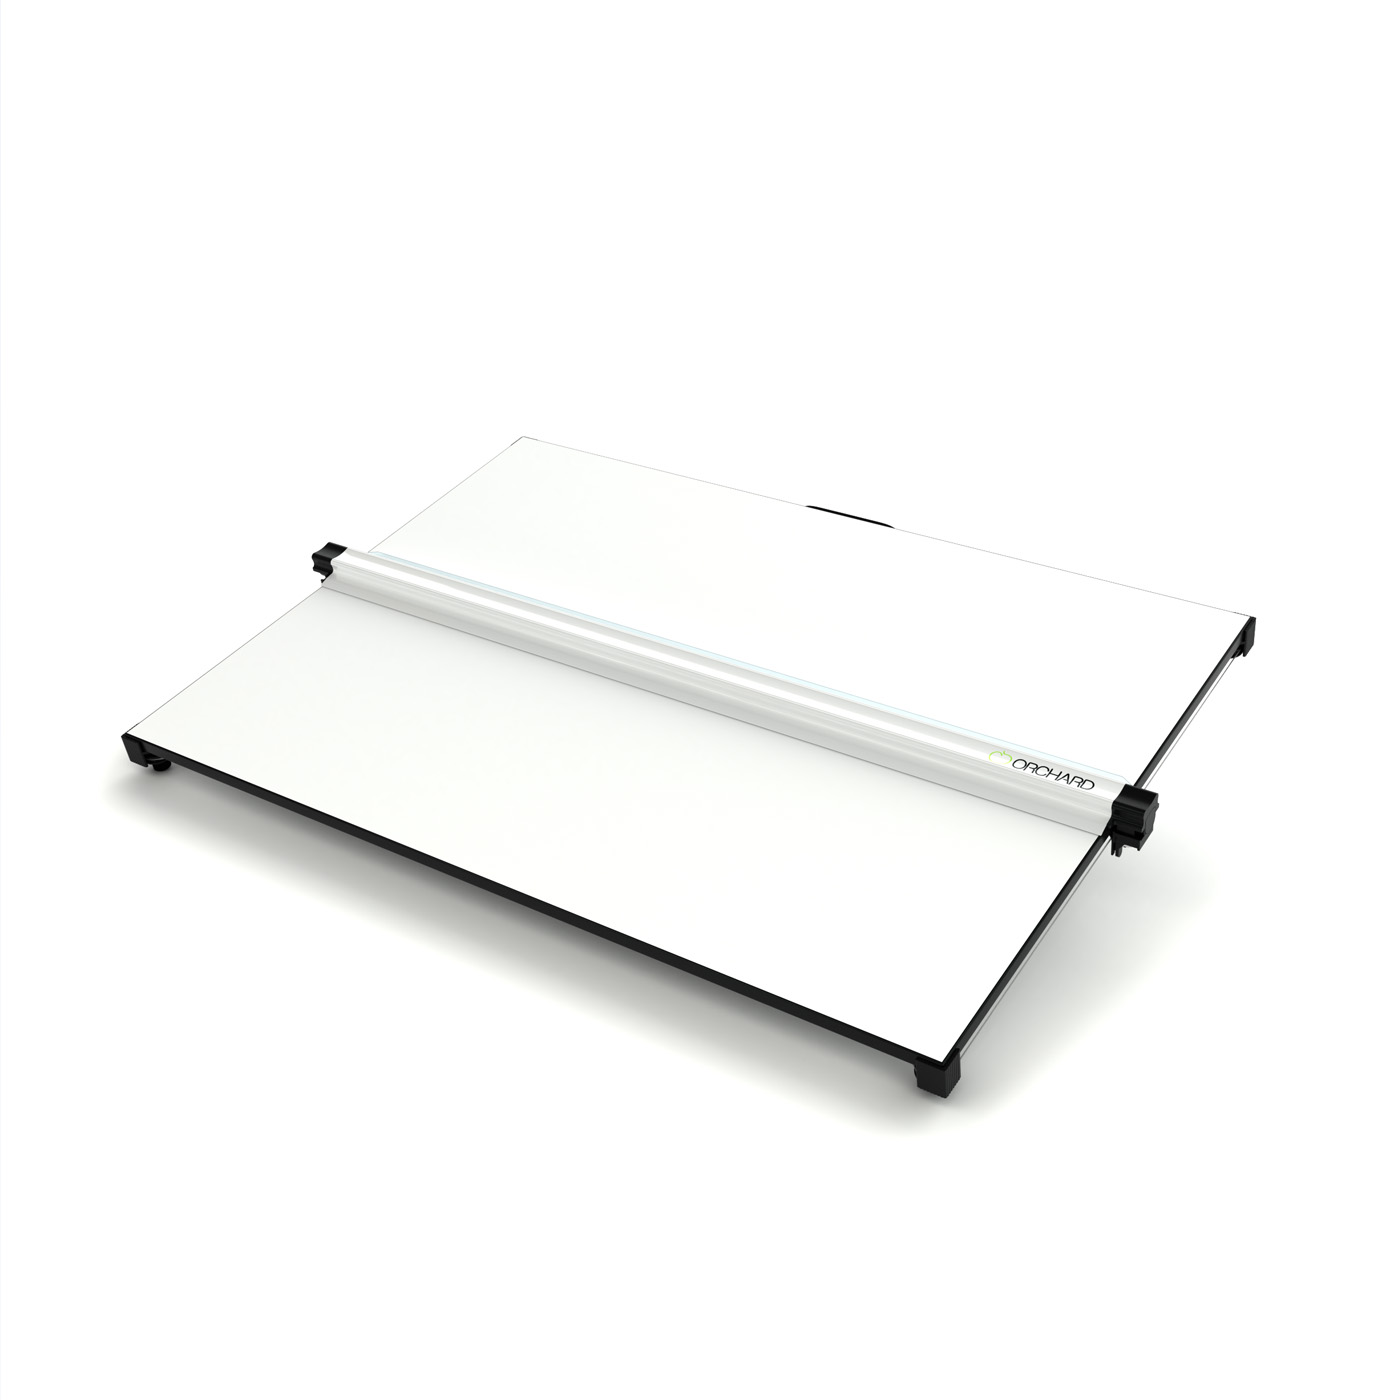 A1 Bretton Drawing Board